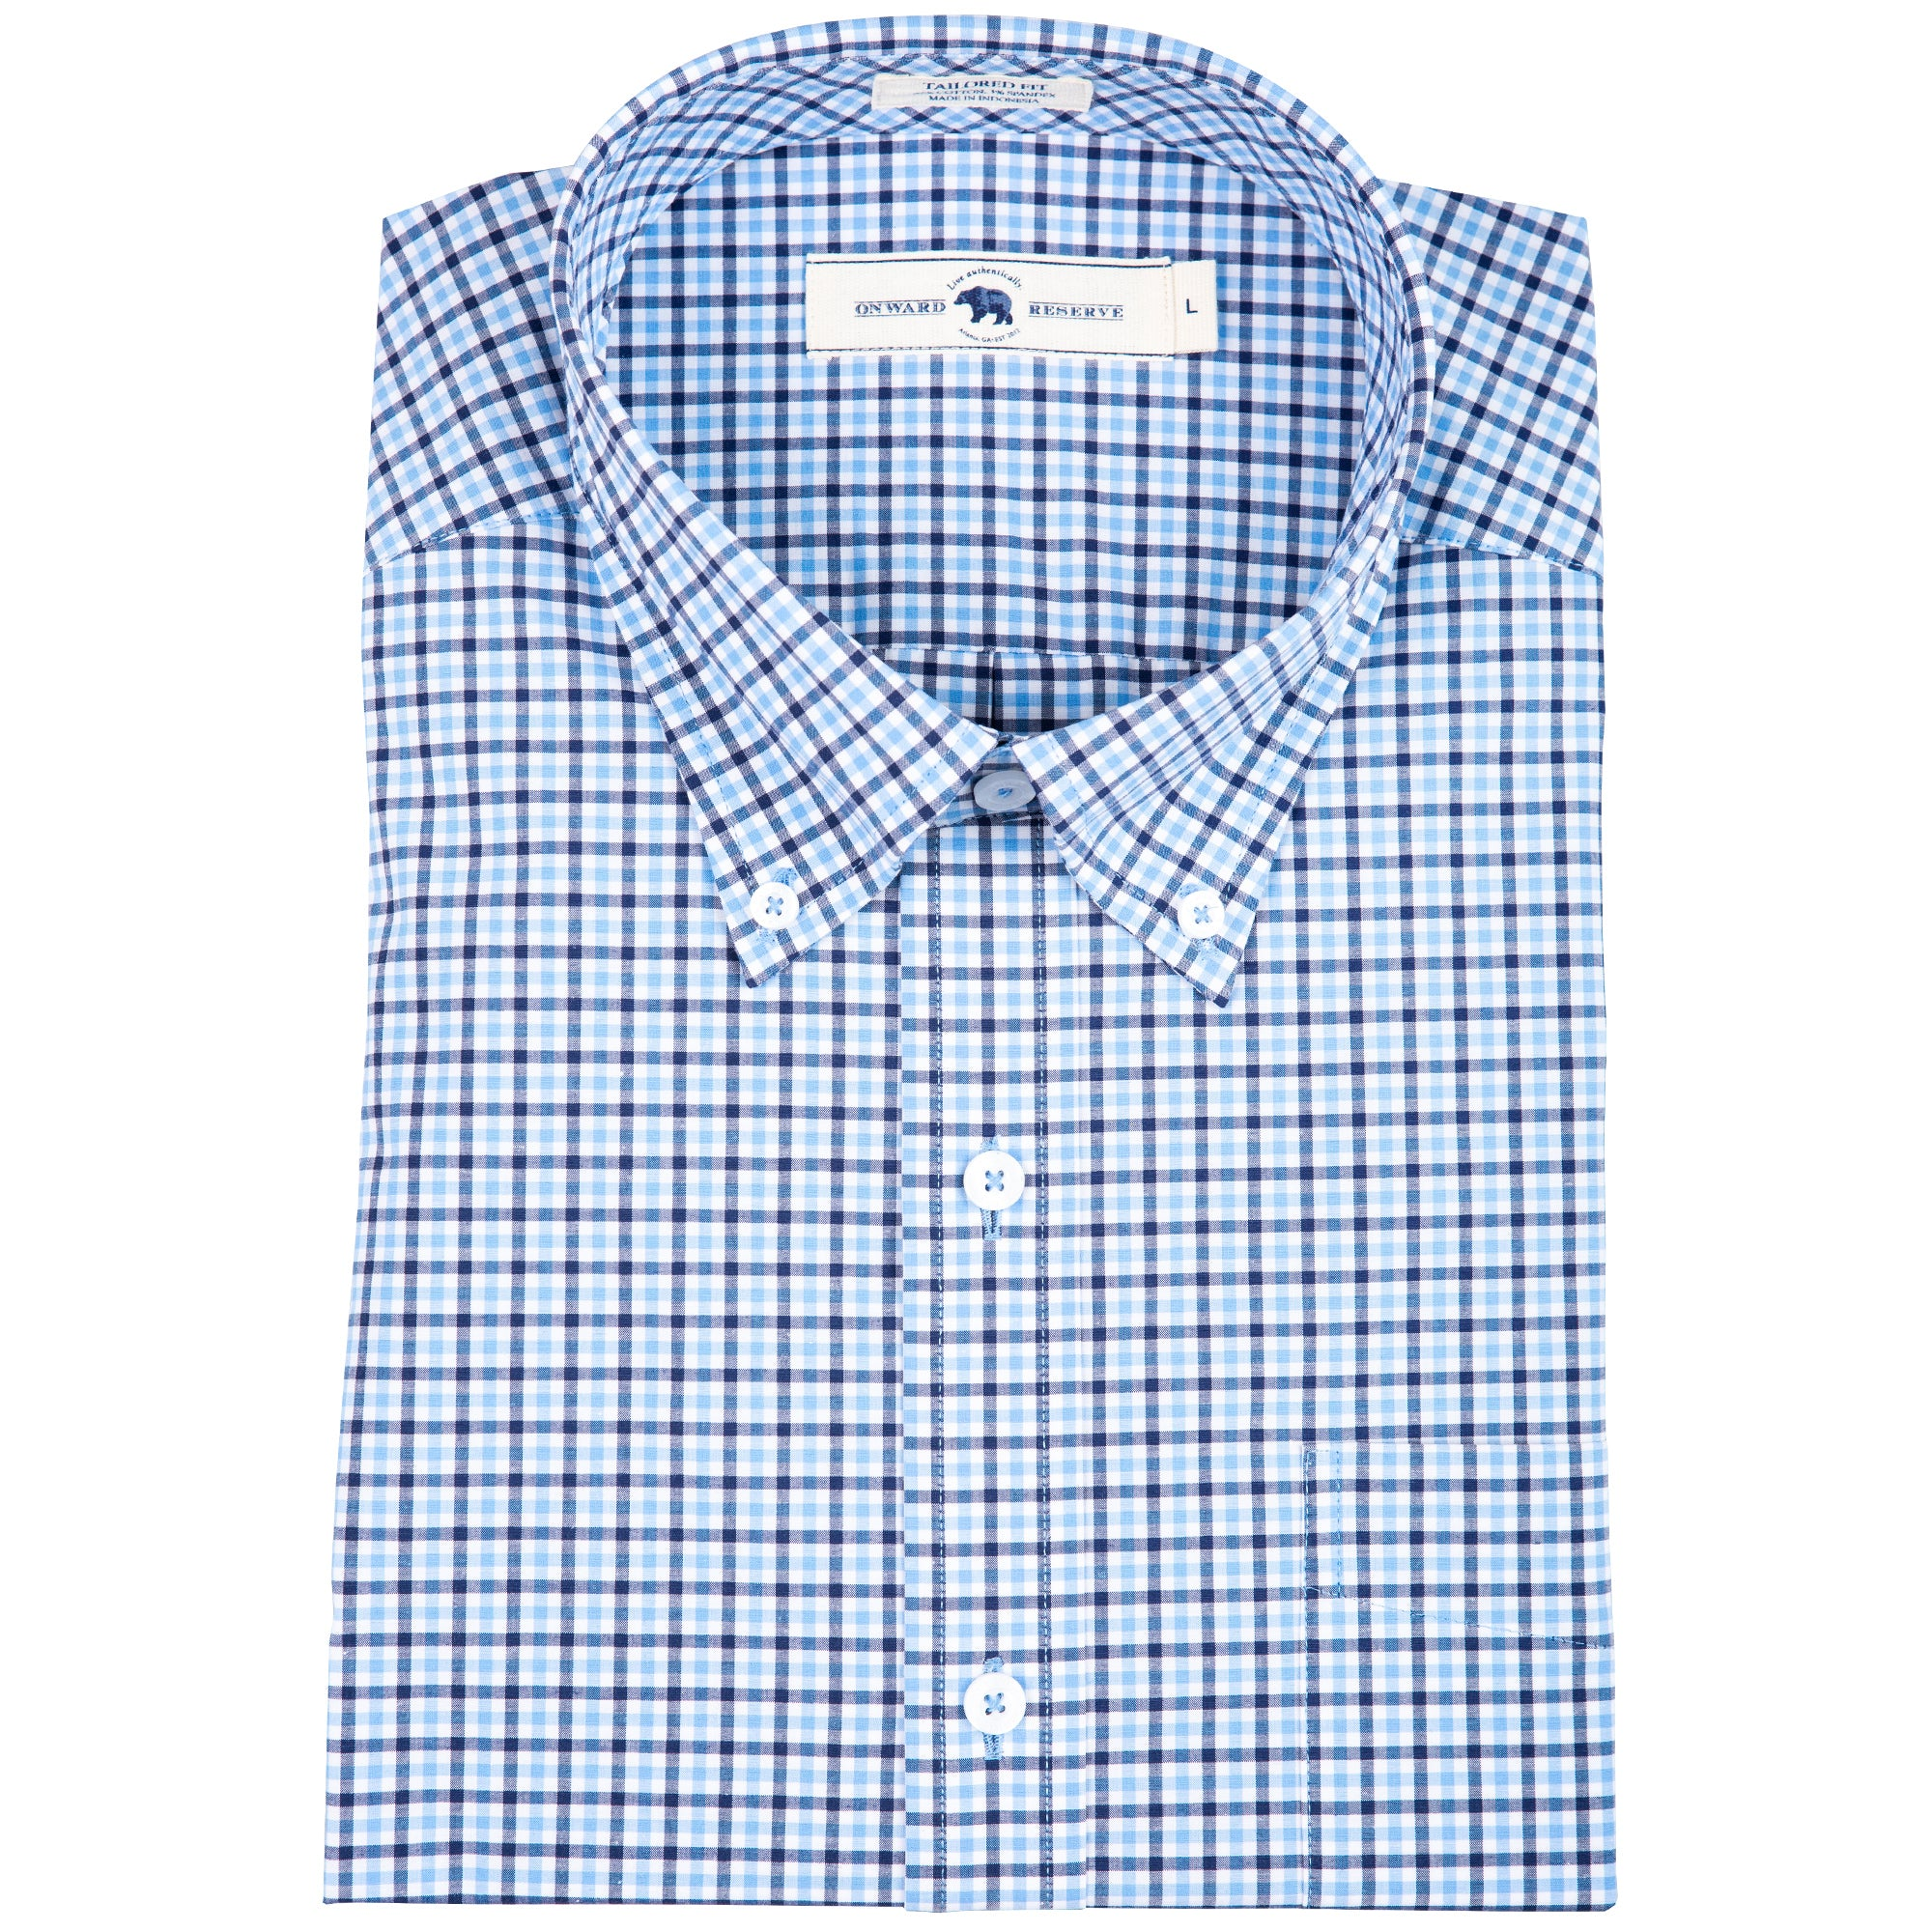 Navy Multi Gingham Tailored Fit Stretch Cotton Button Down - Onward Reserve